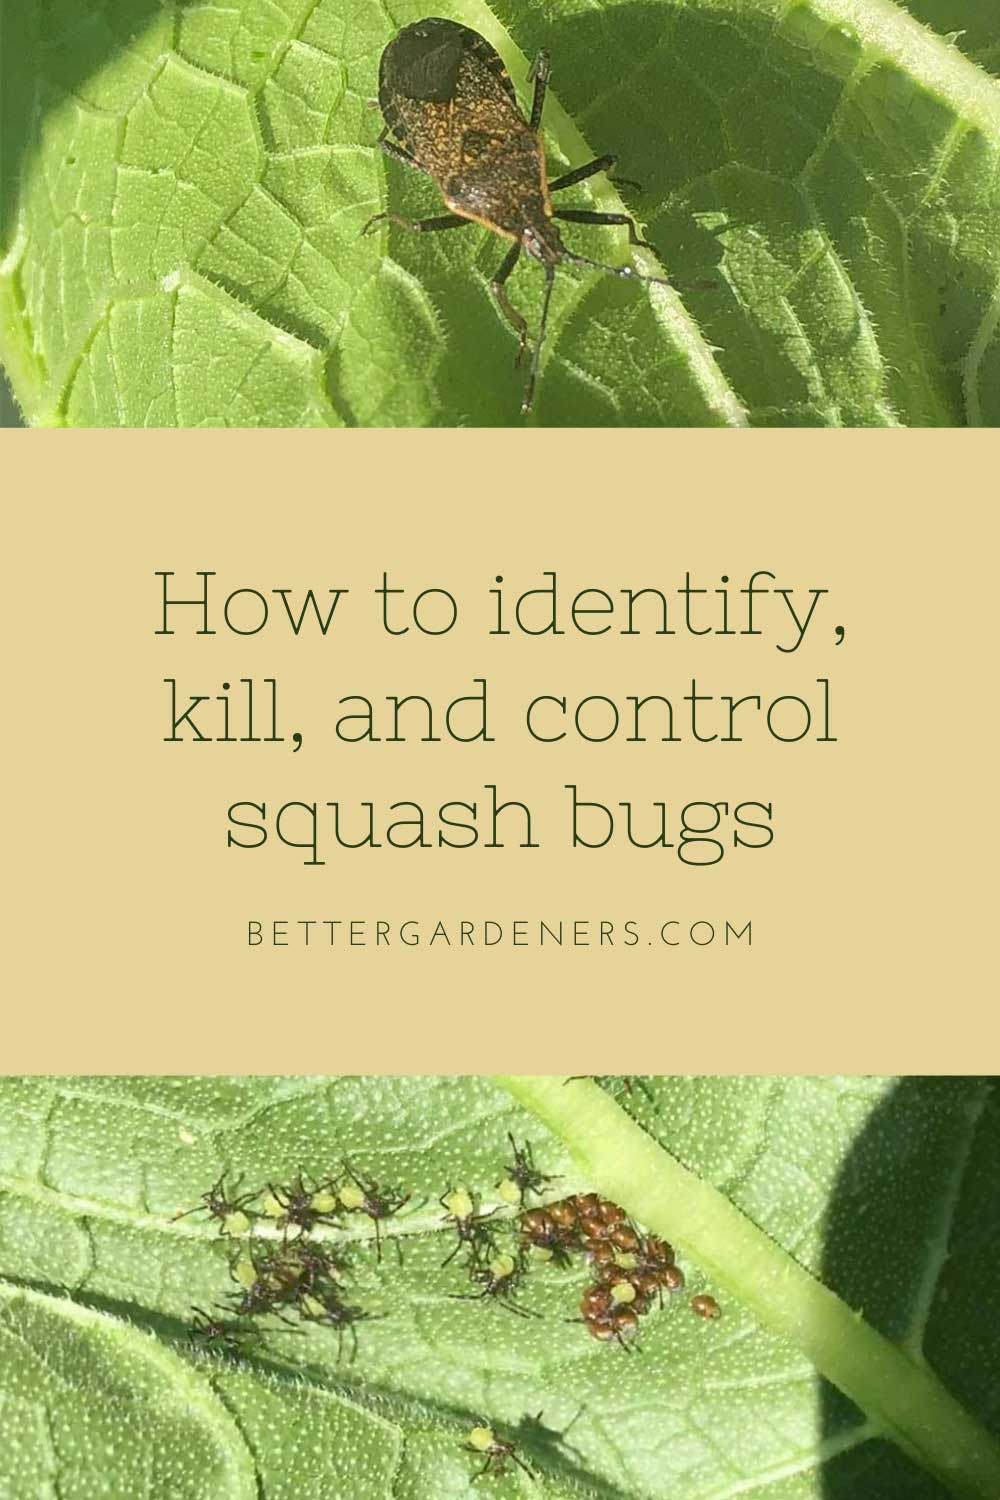 How to identify, kill, and control squash bugs in your garden